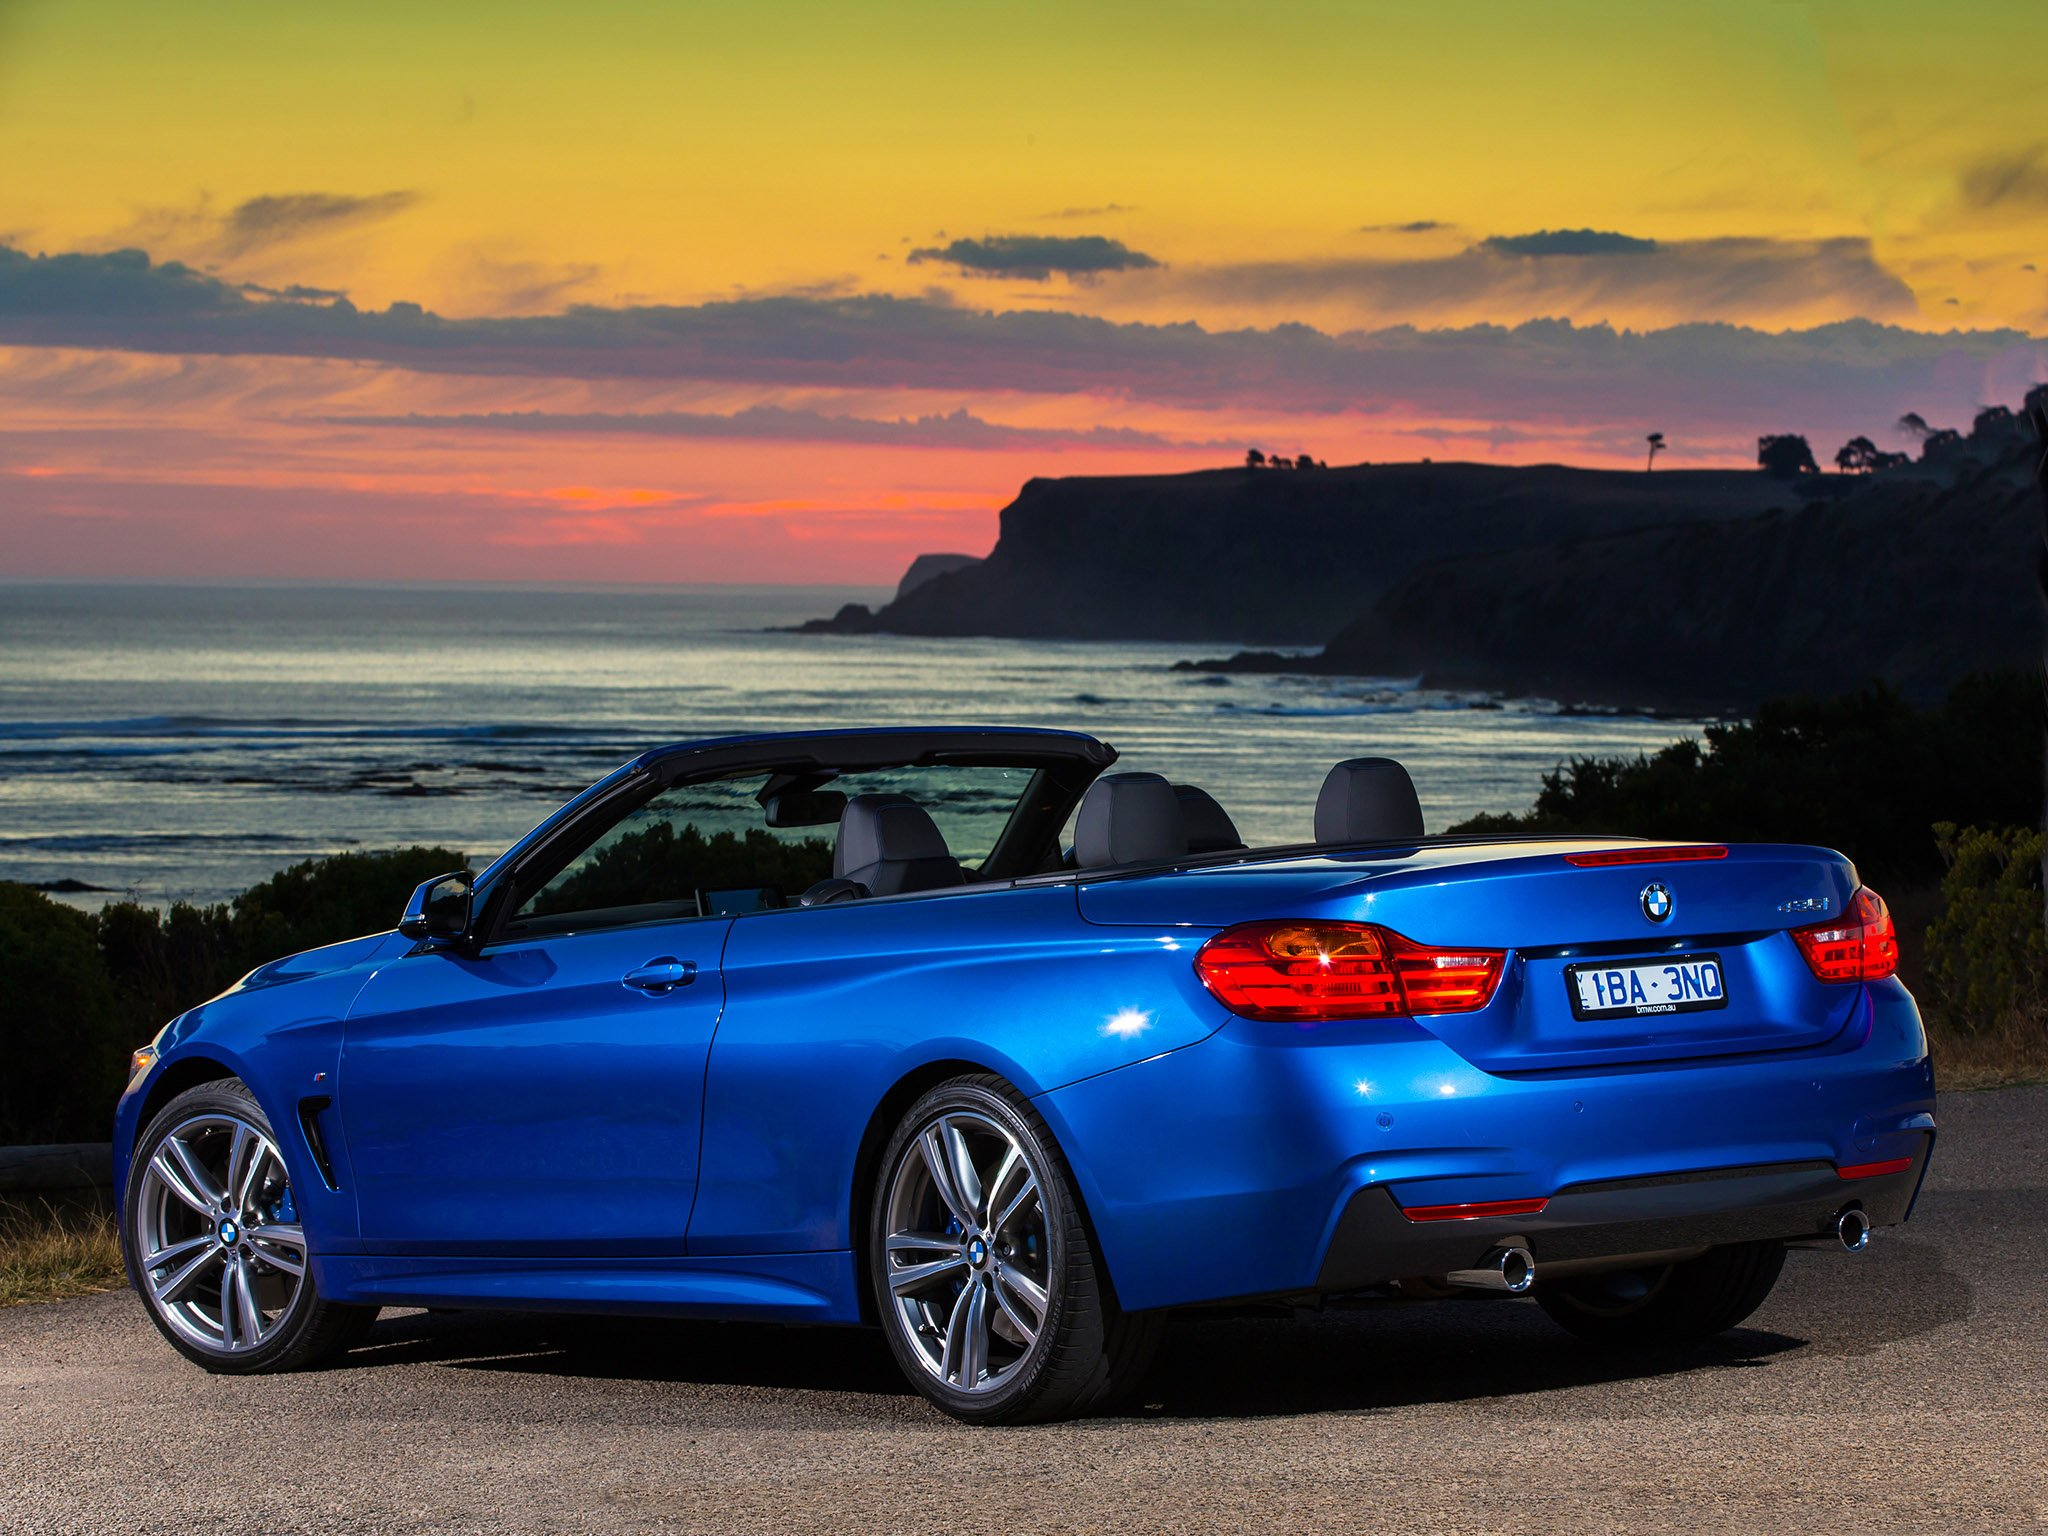 bmw 4 series 435i cabrio m sport package wallpaper 2048x1536 384592 wallpaperup. Black Bedroom Furniture Sets. Home Design Ideas